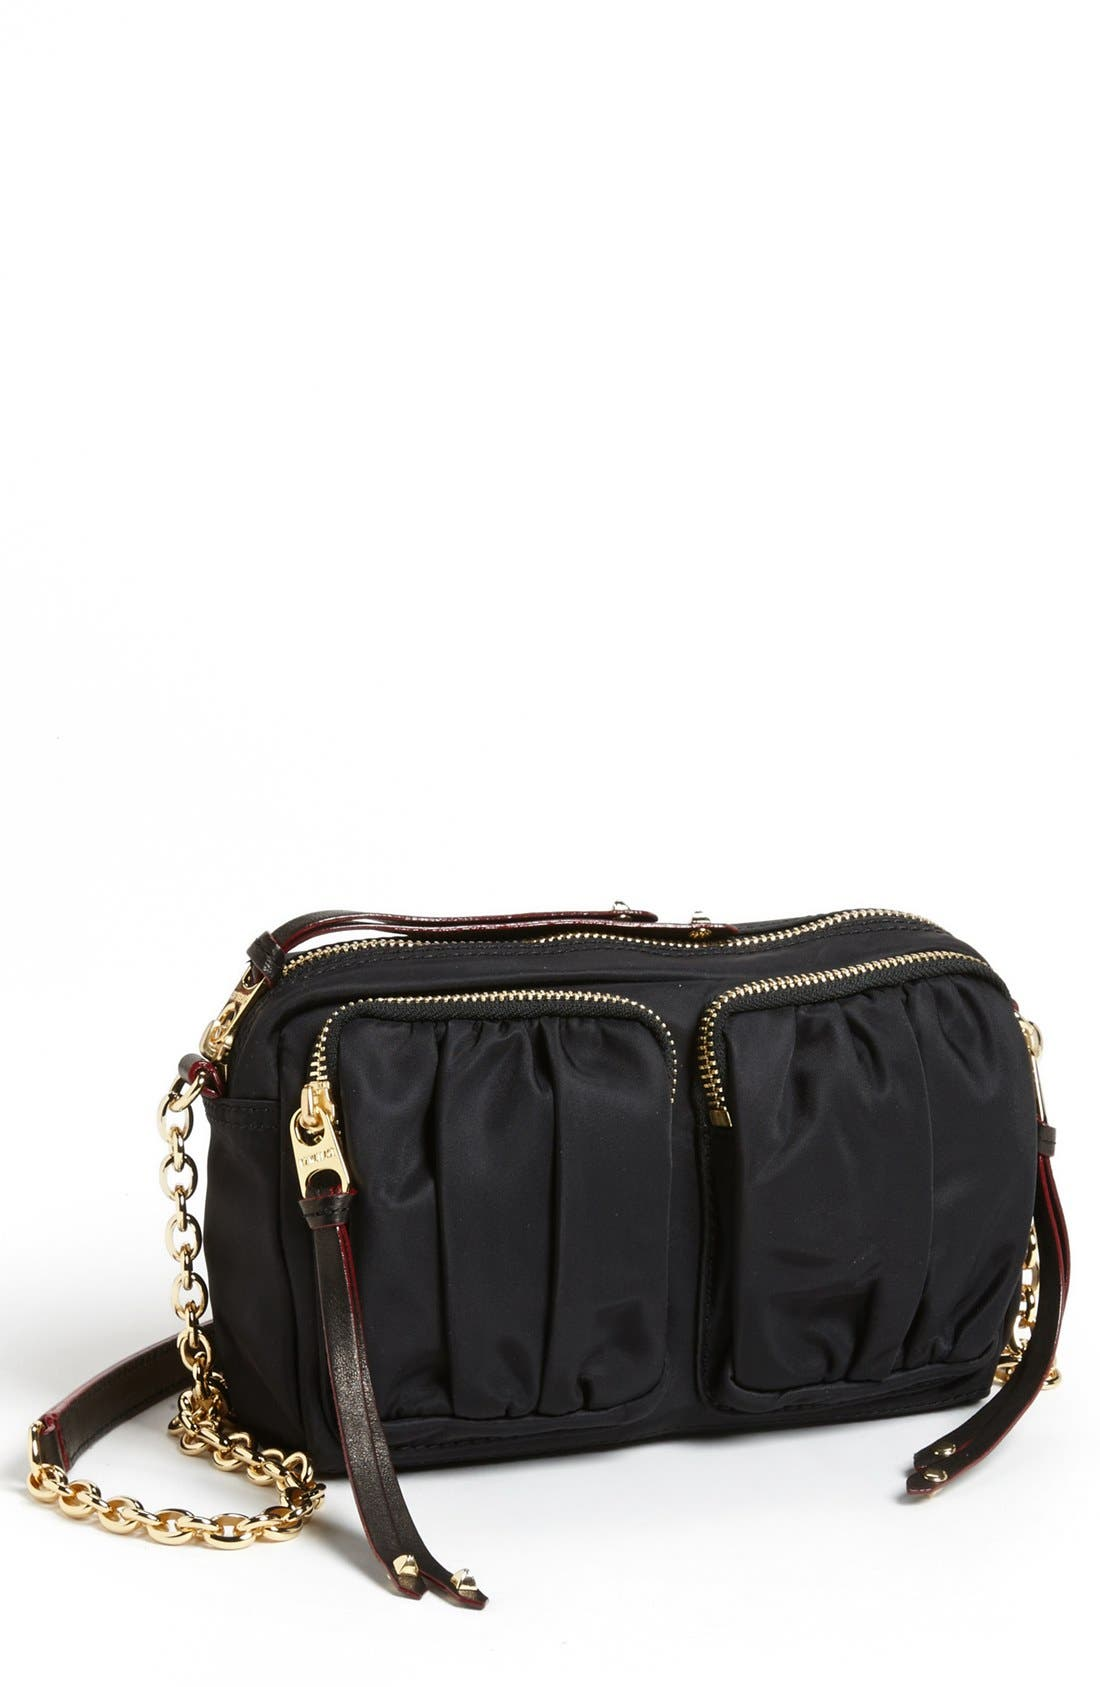 Main Image - MZ Wallace 'Penny' Bedford Nylon Crossbody Bag